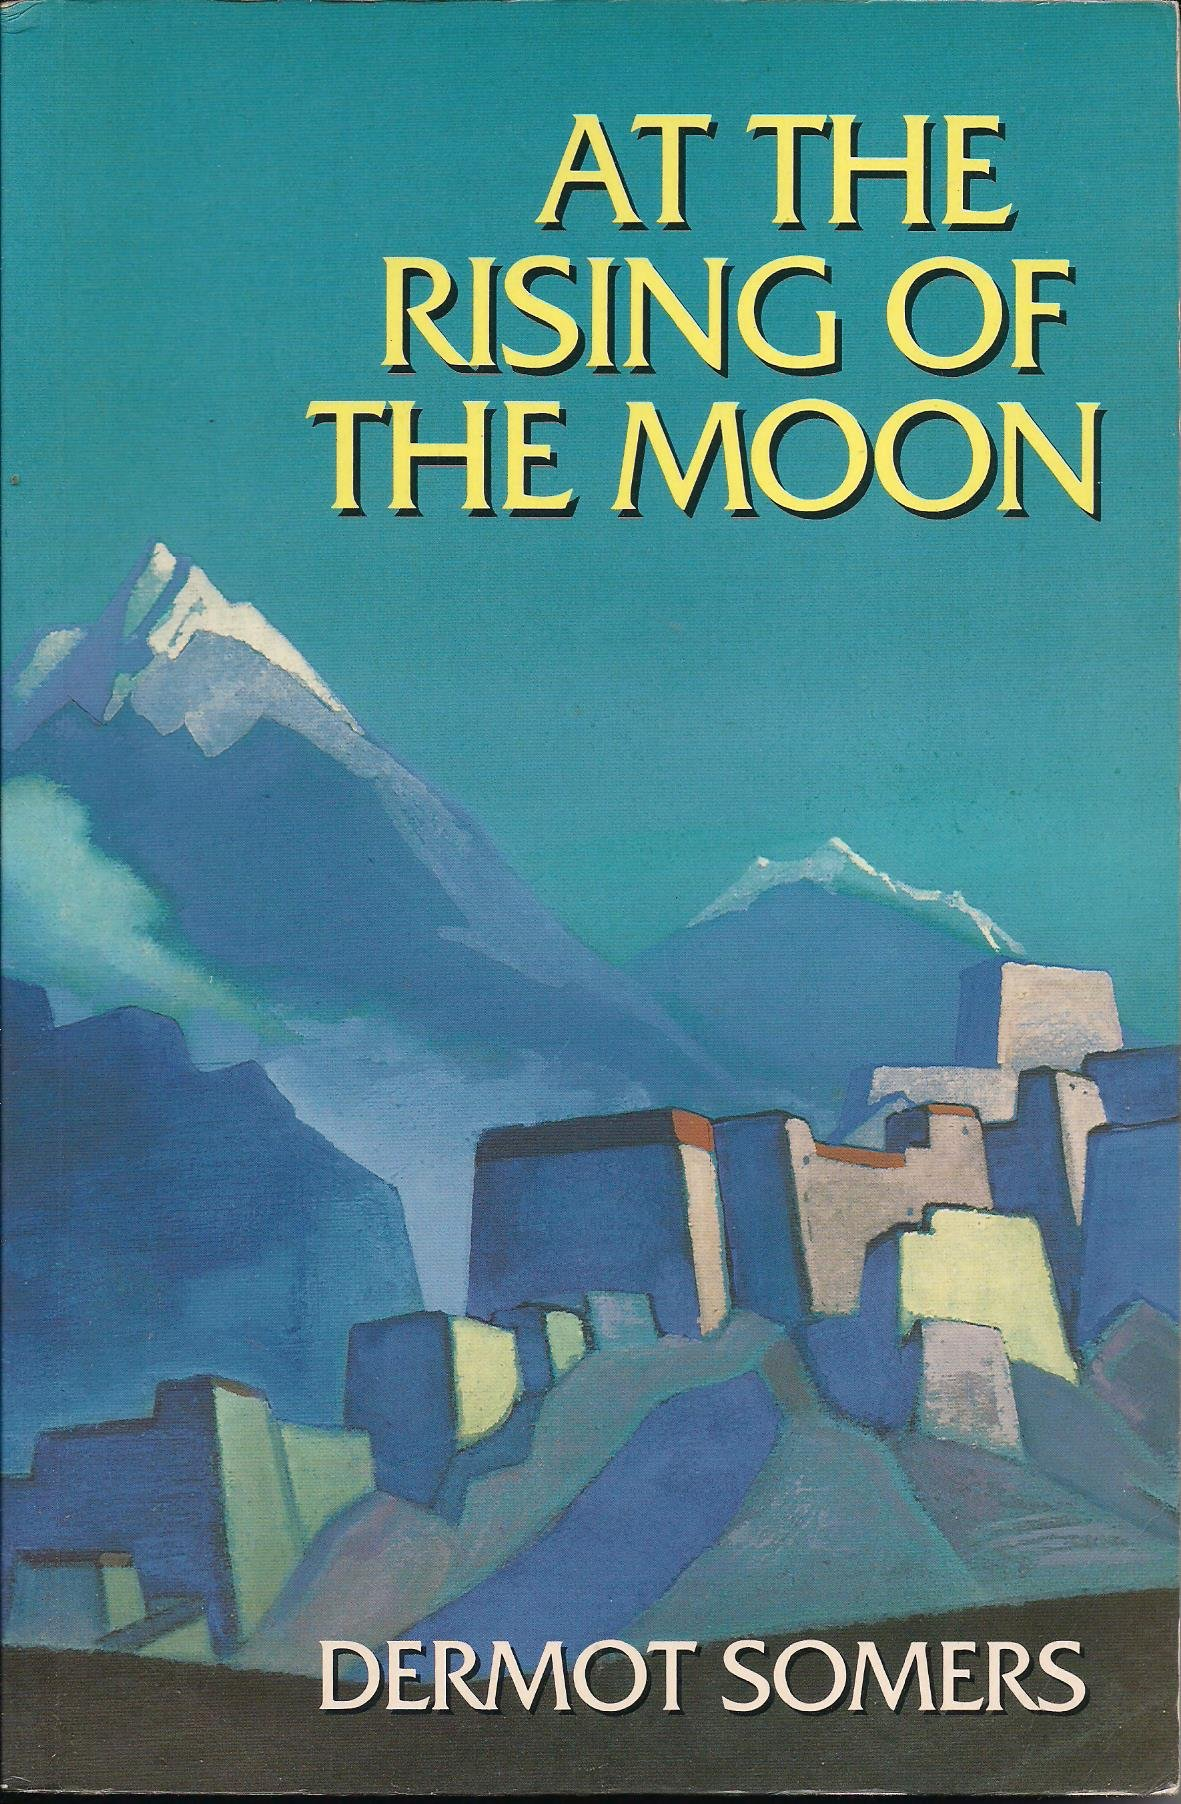 At the Rising of the Moon - Dermot Somers